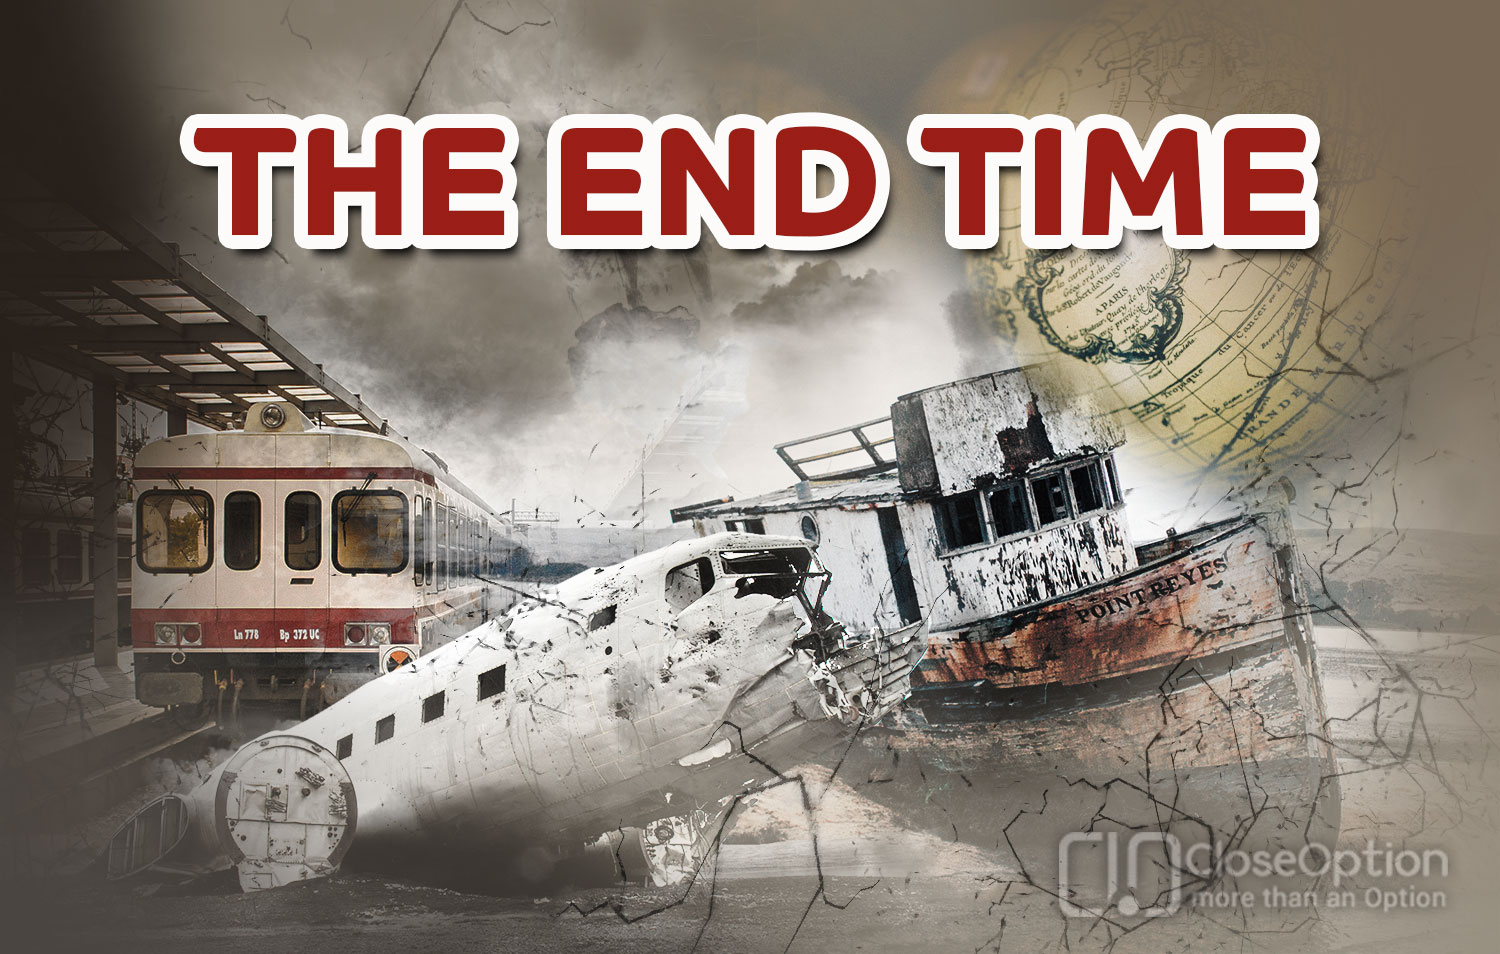 The End Time And The End Of Financial Markets!